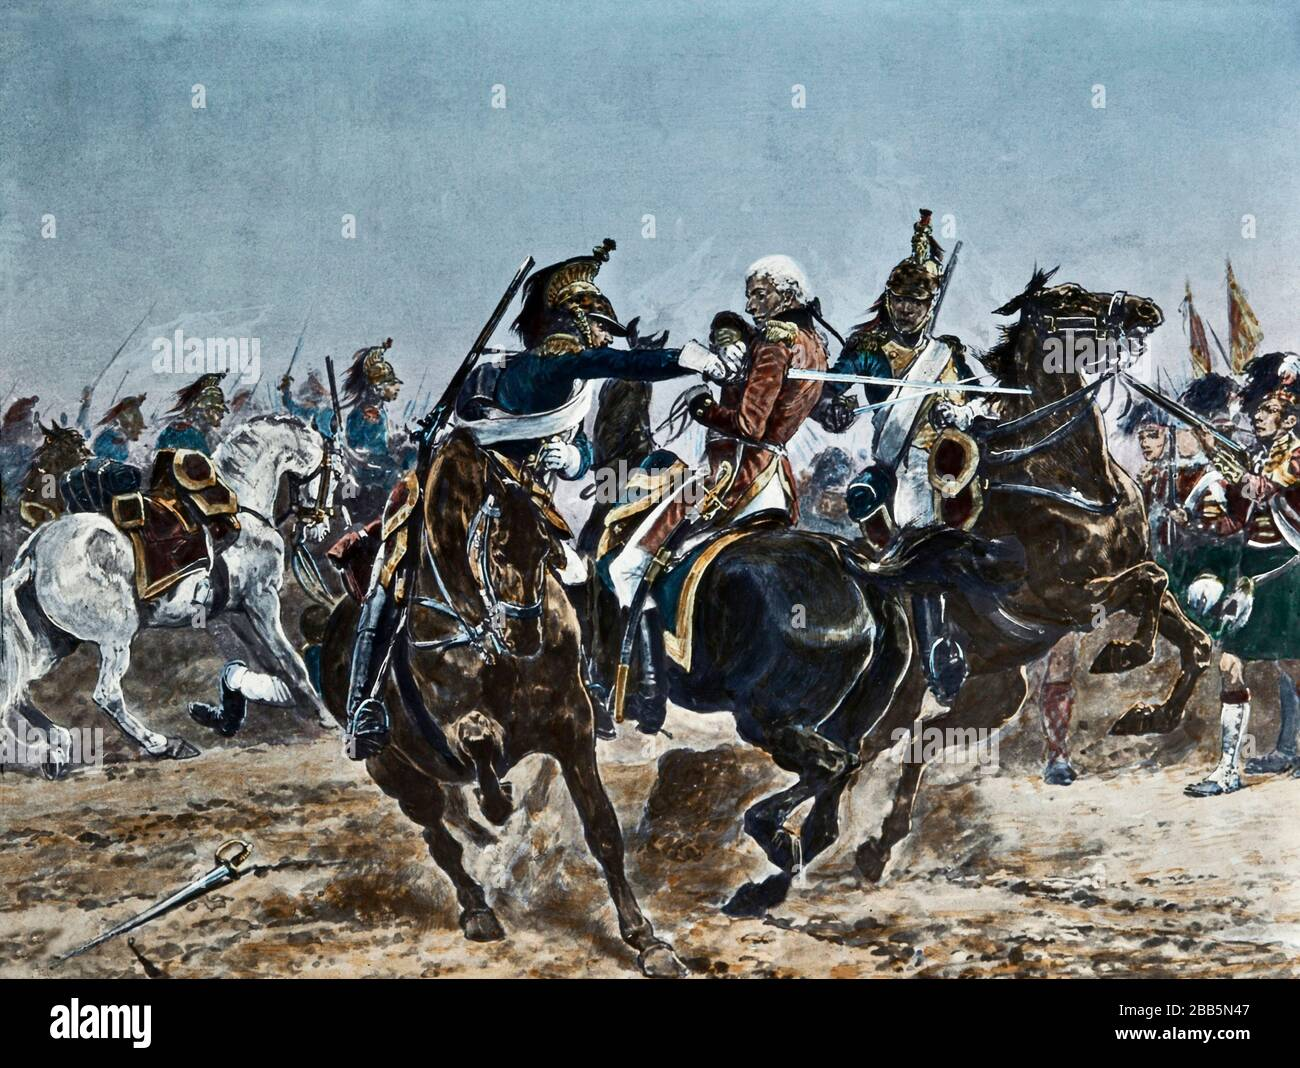 Animation illustrations of English and French military campaigns and war settings circa 1800 to include the French Revolution and Napoleonic wars.  These illustrations were created circa 1900 Stock Photo